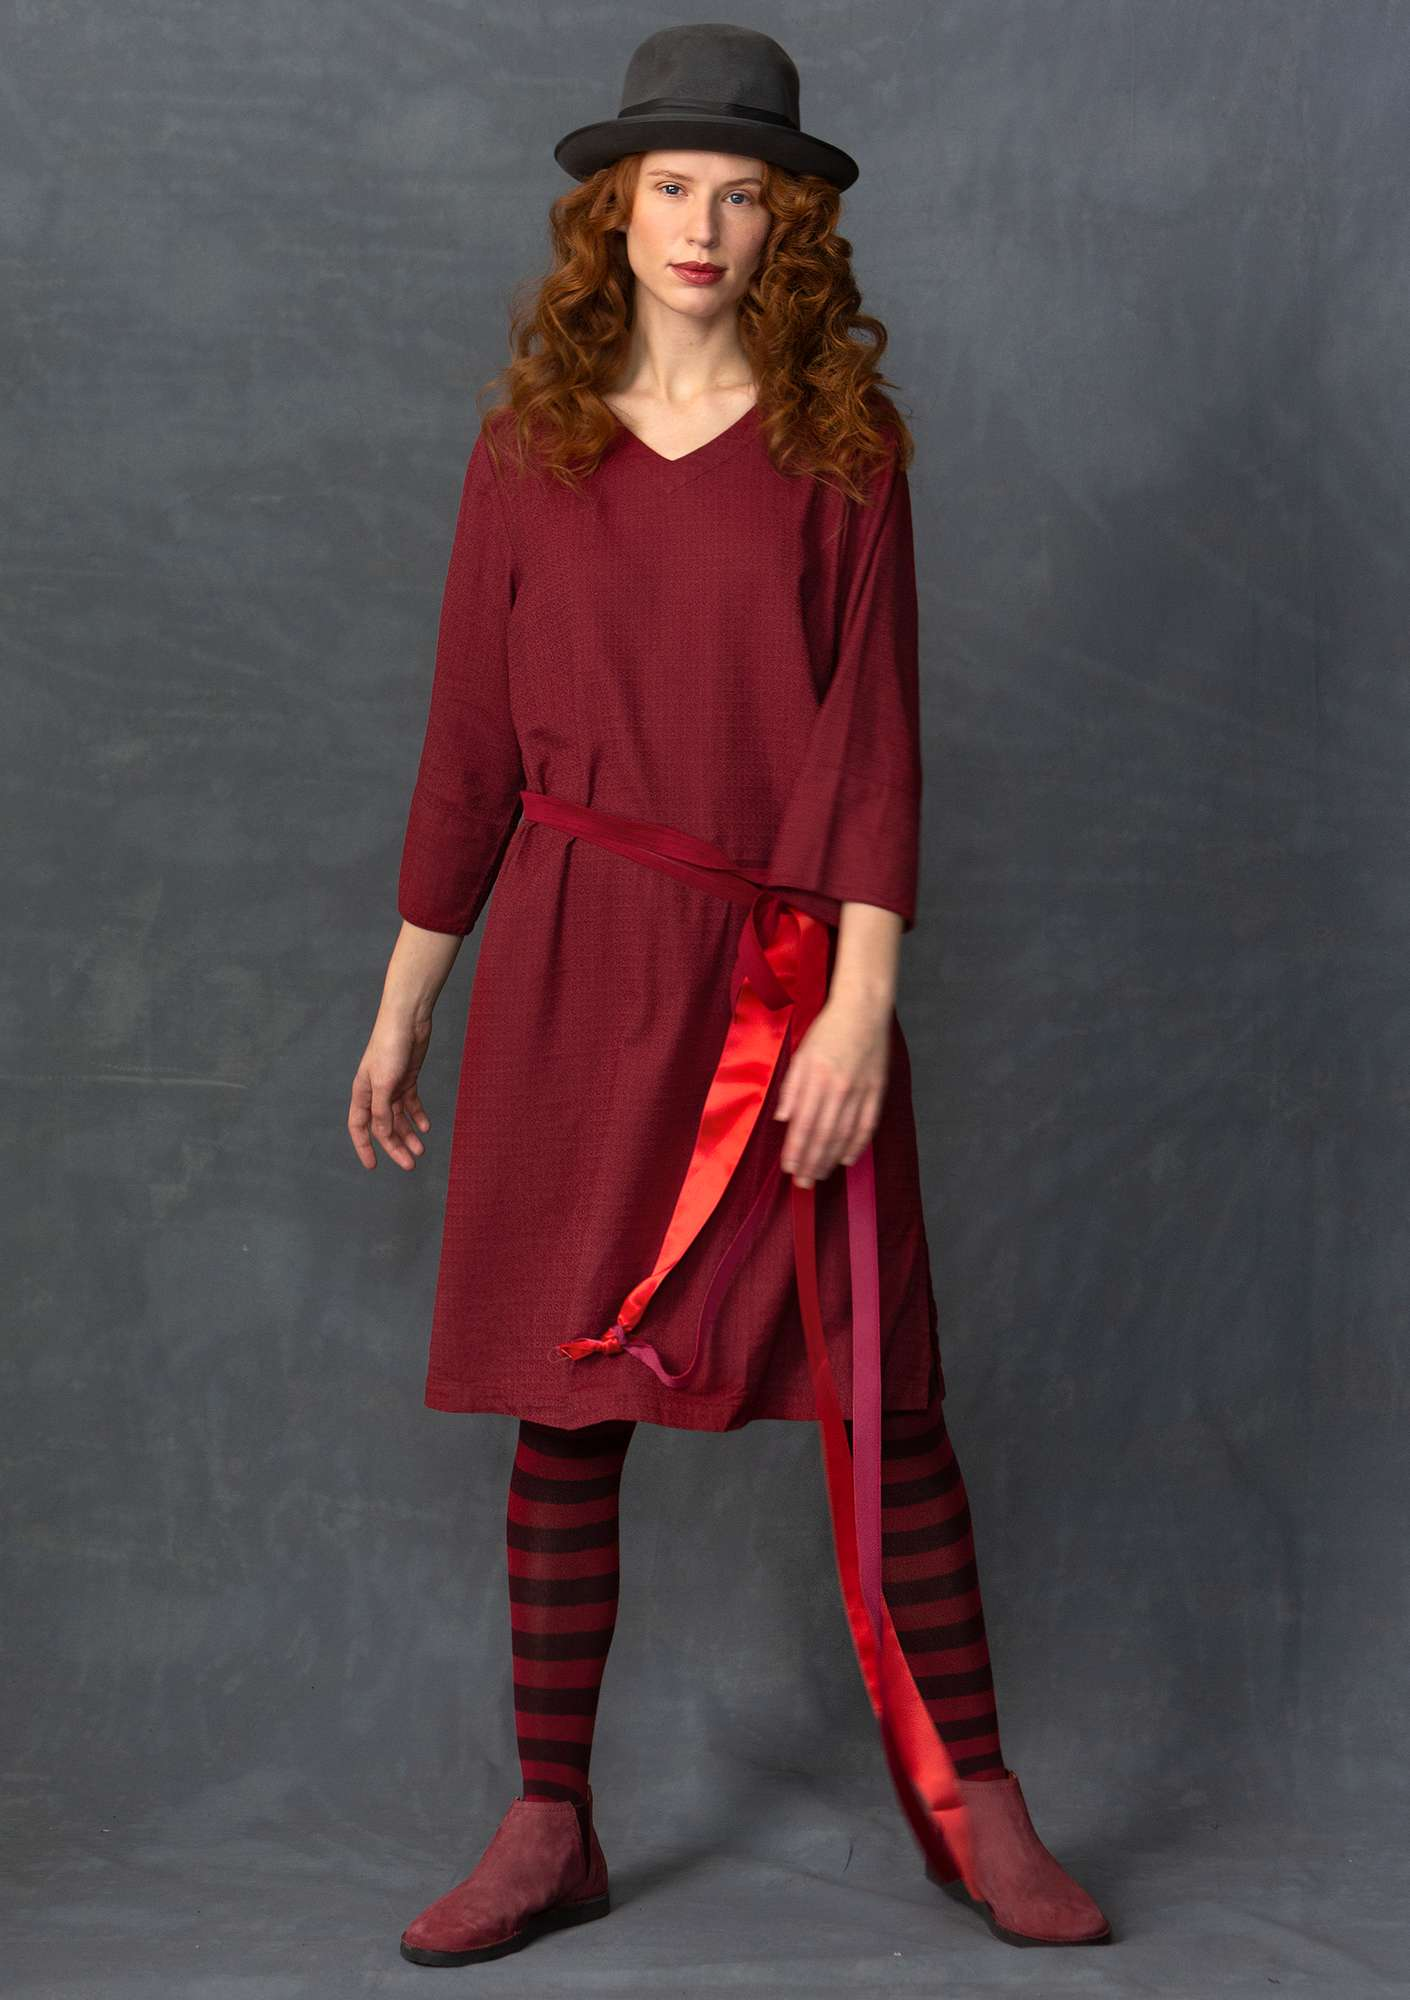 Dress made of cotton/viscose pomegranate